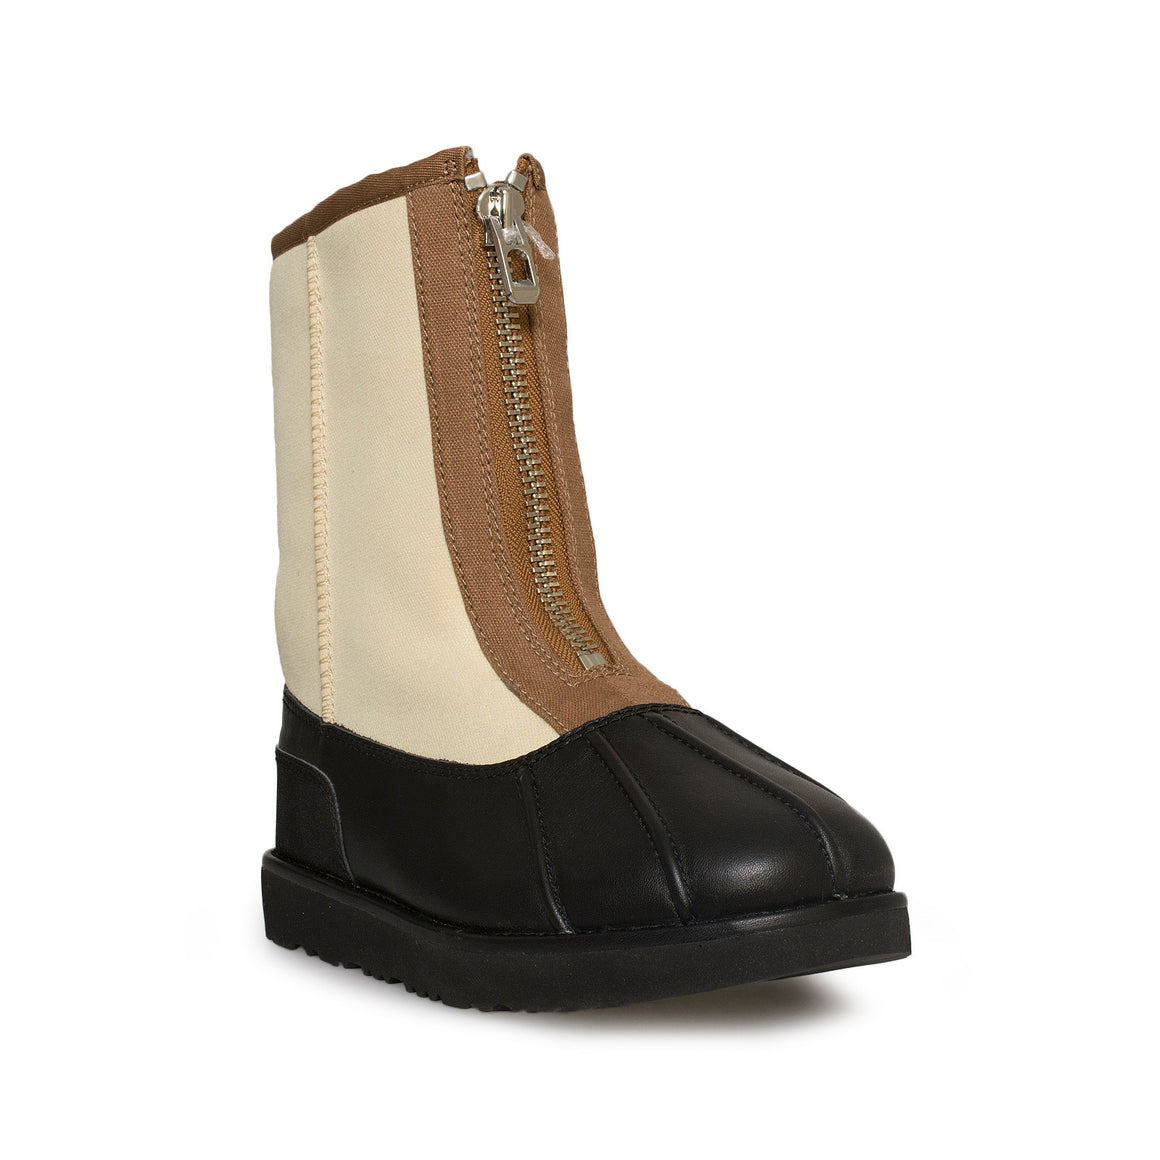 UGG Phillip Lim Classic Short Duck Ivory Boots